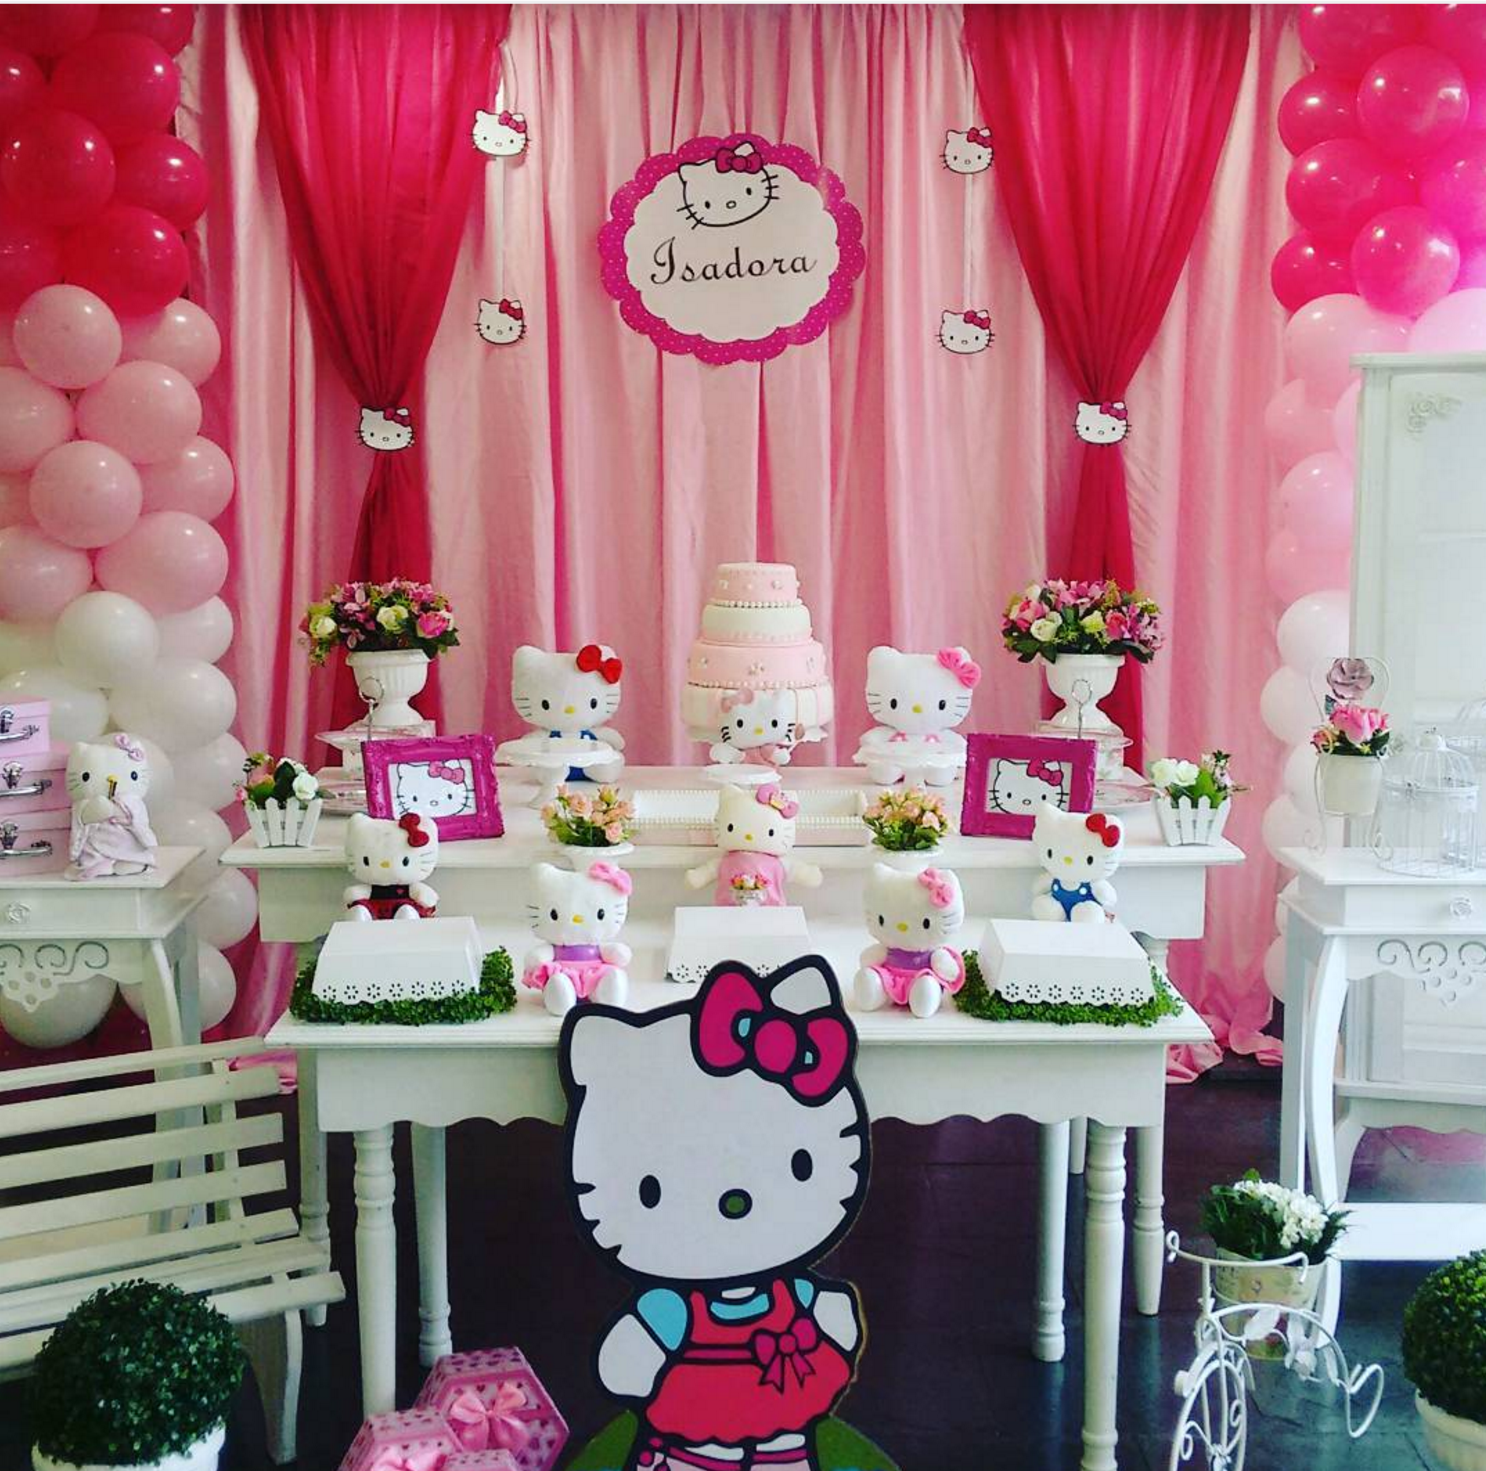 101 fiestas una fiesta divertida con hello kitty - Cortinas de hello kitty ...